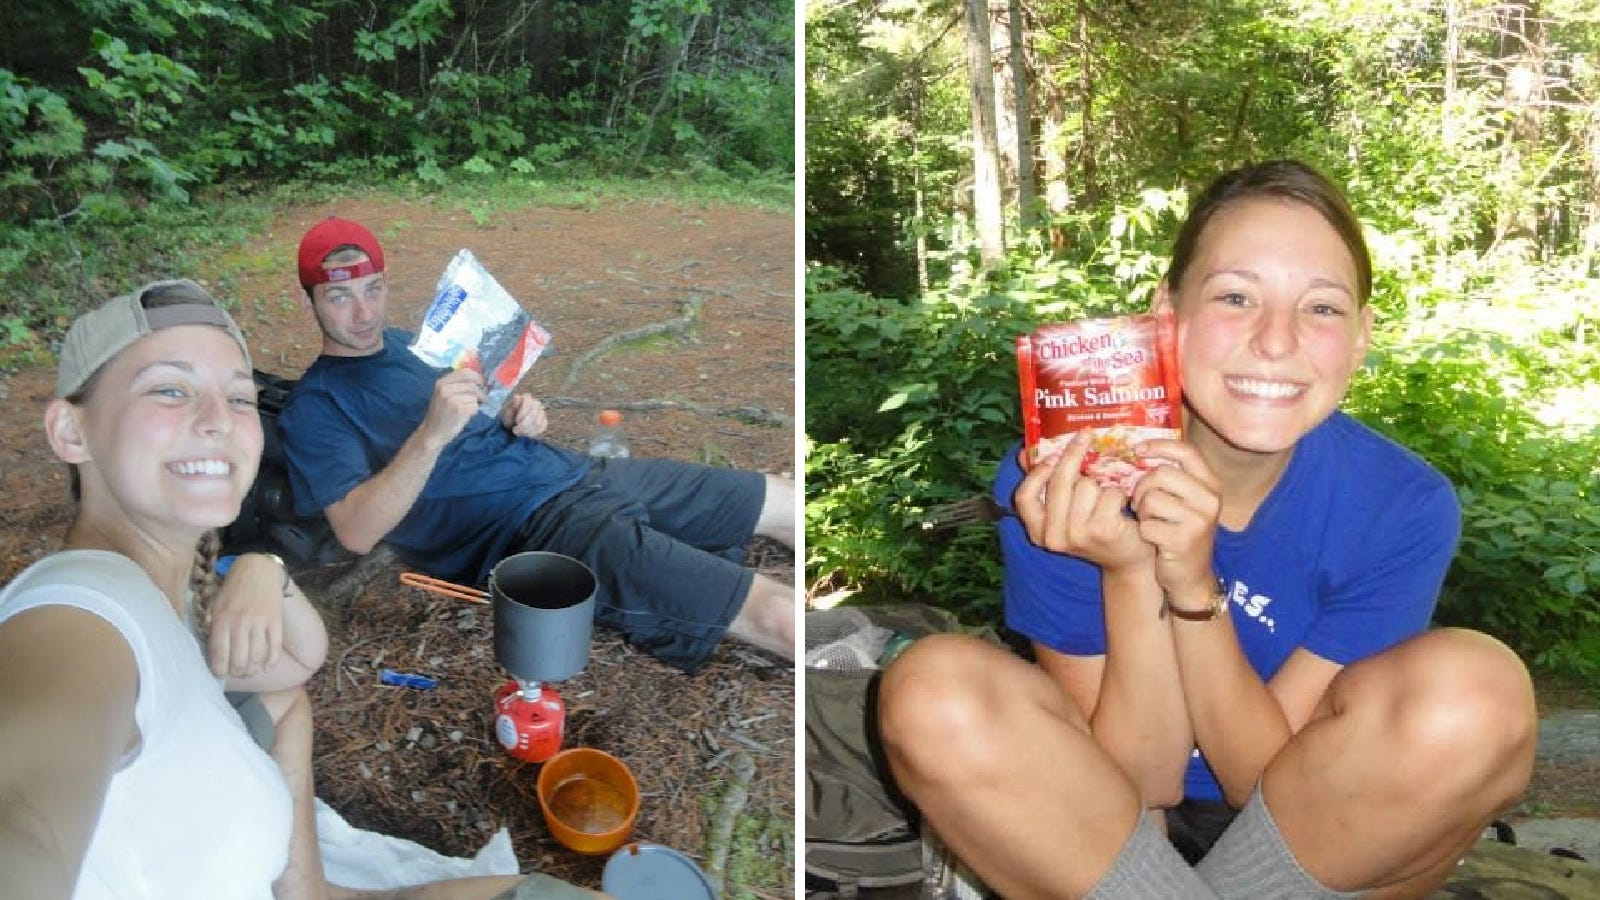 Two images from seperate backpacking trips, cooking with out GSI cookware, and MSR stove and fuel canisters and enjoying lunch along the trail.